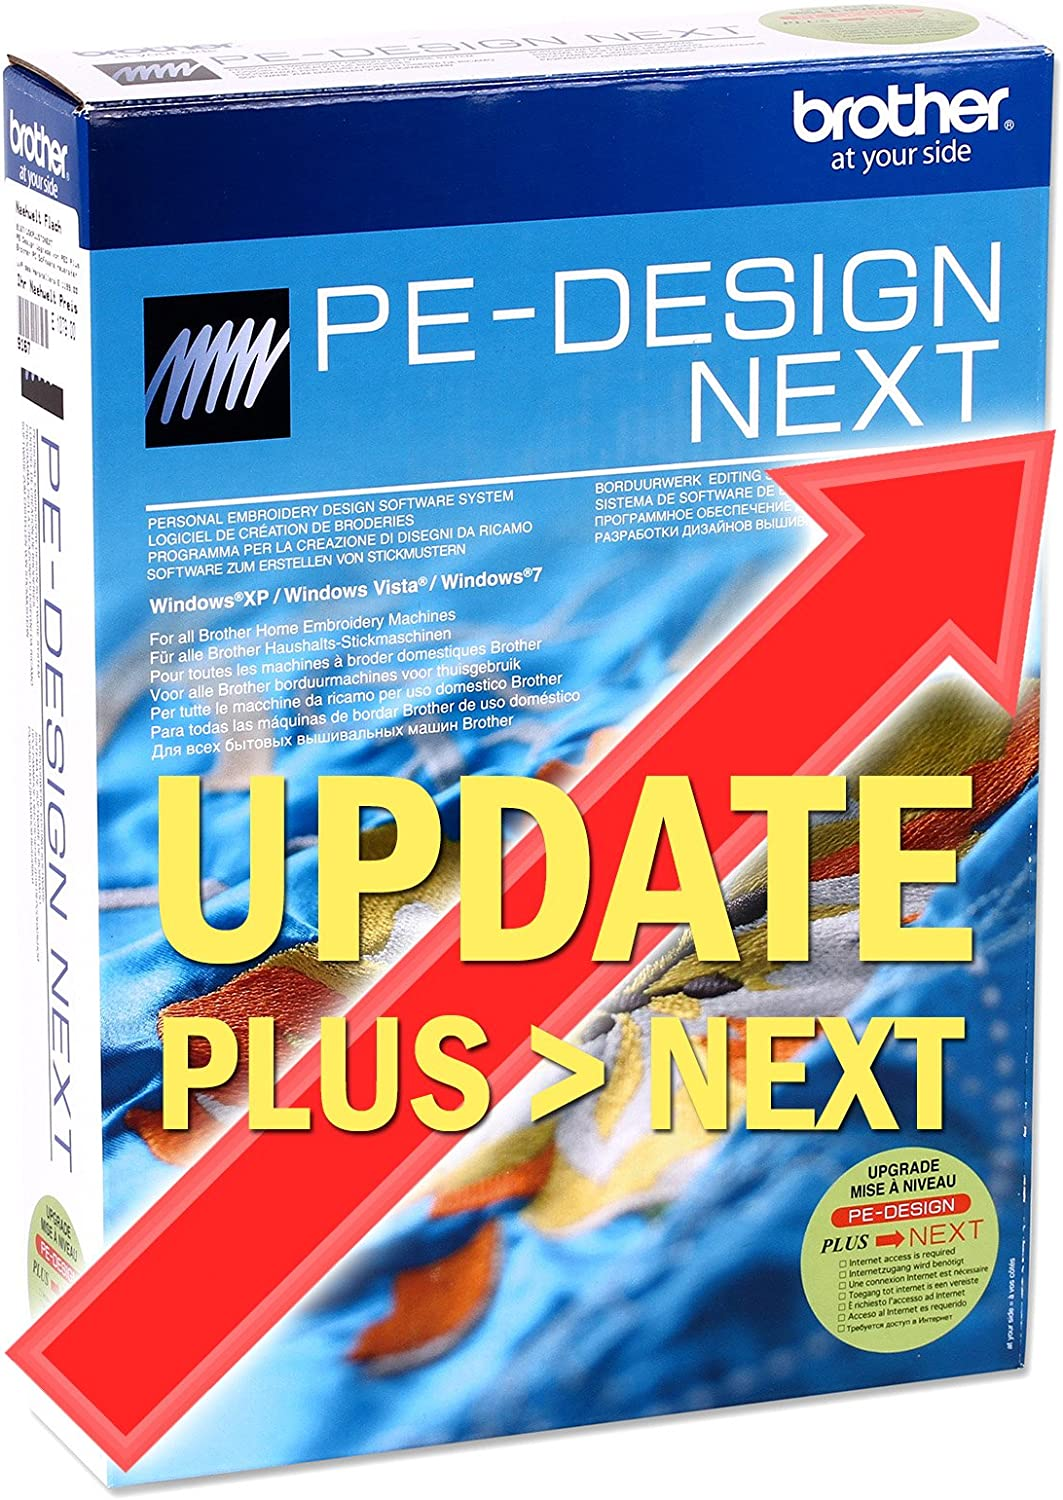 Brother Ped Pe Design Next Embroidery Software Upgrade Plus To Next Amazon Ca Home Kitchen